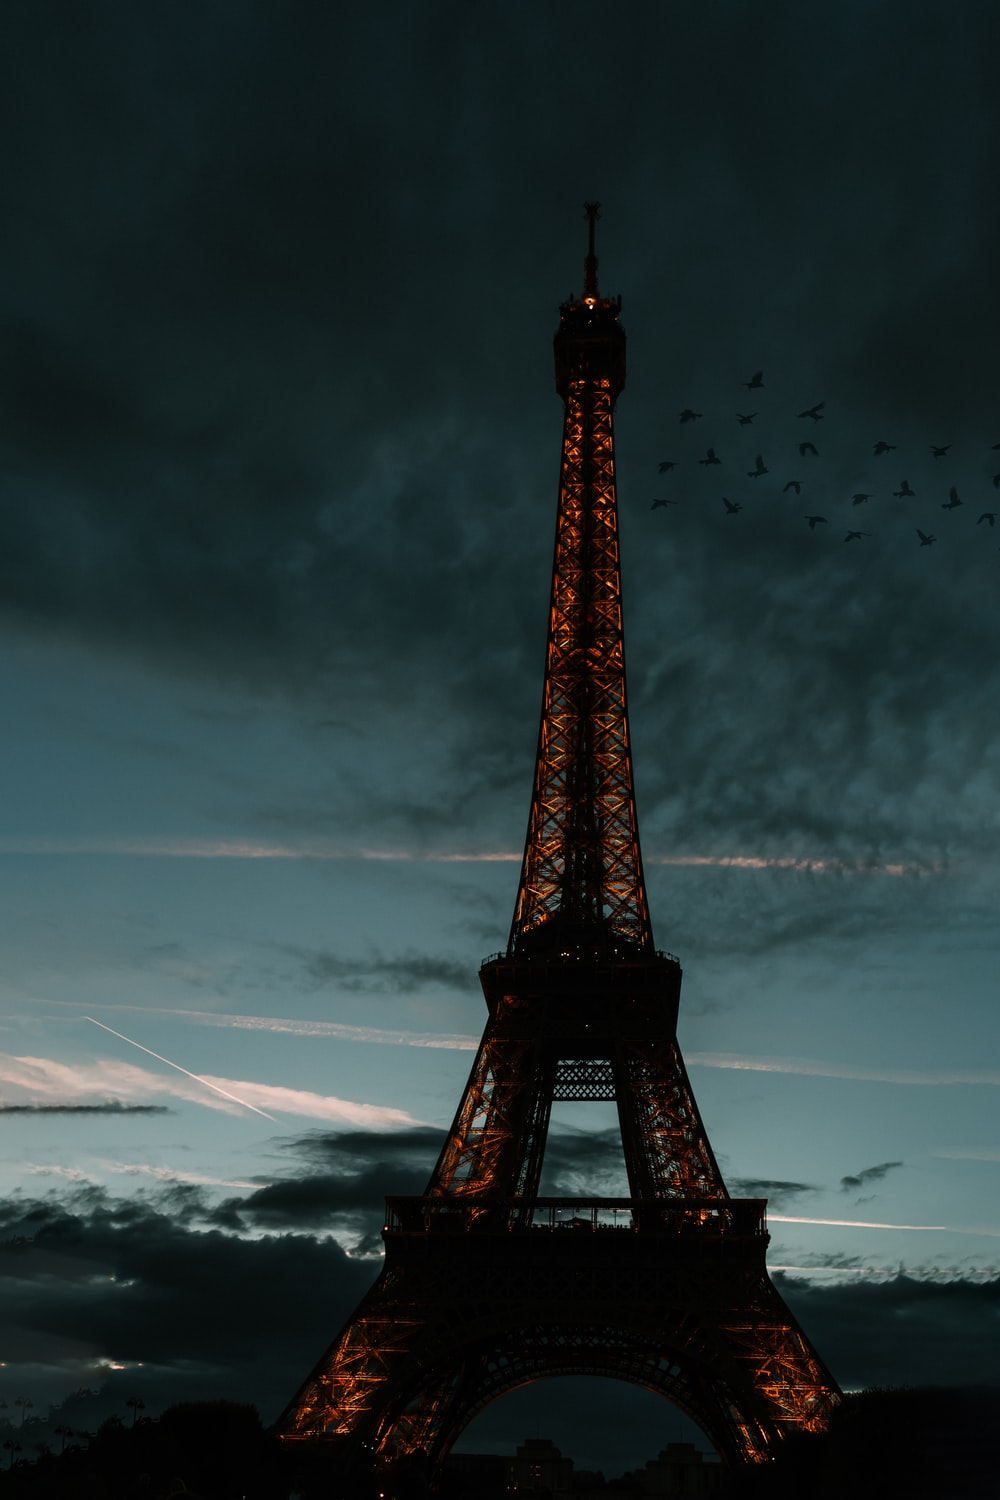 Eiffel Tower in Paris France during night time